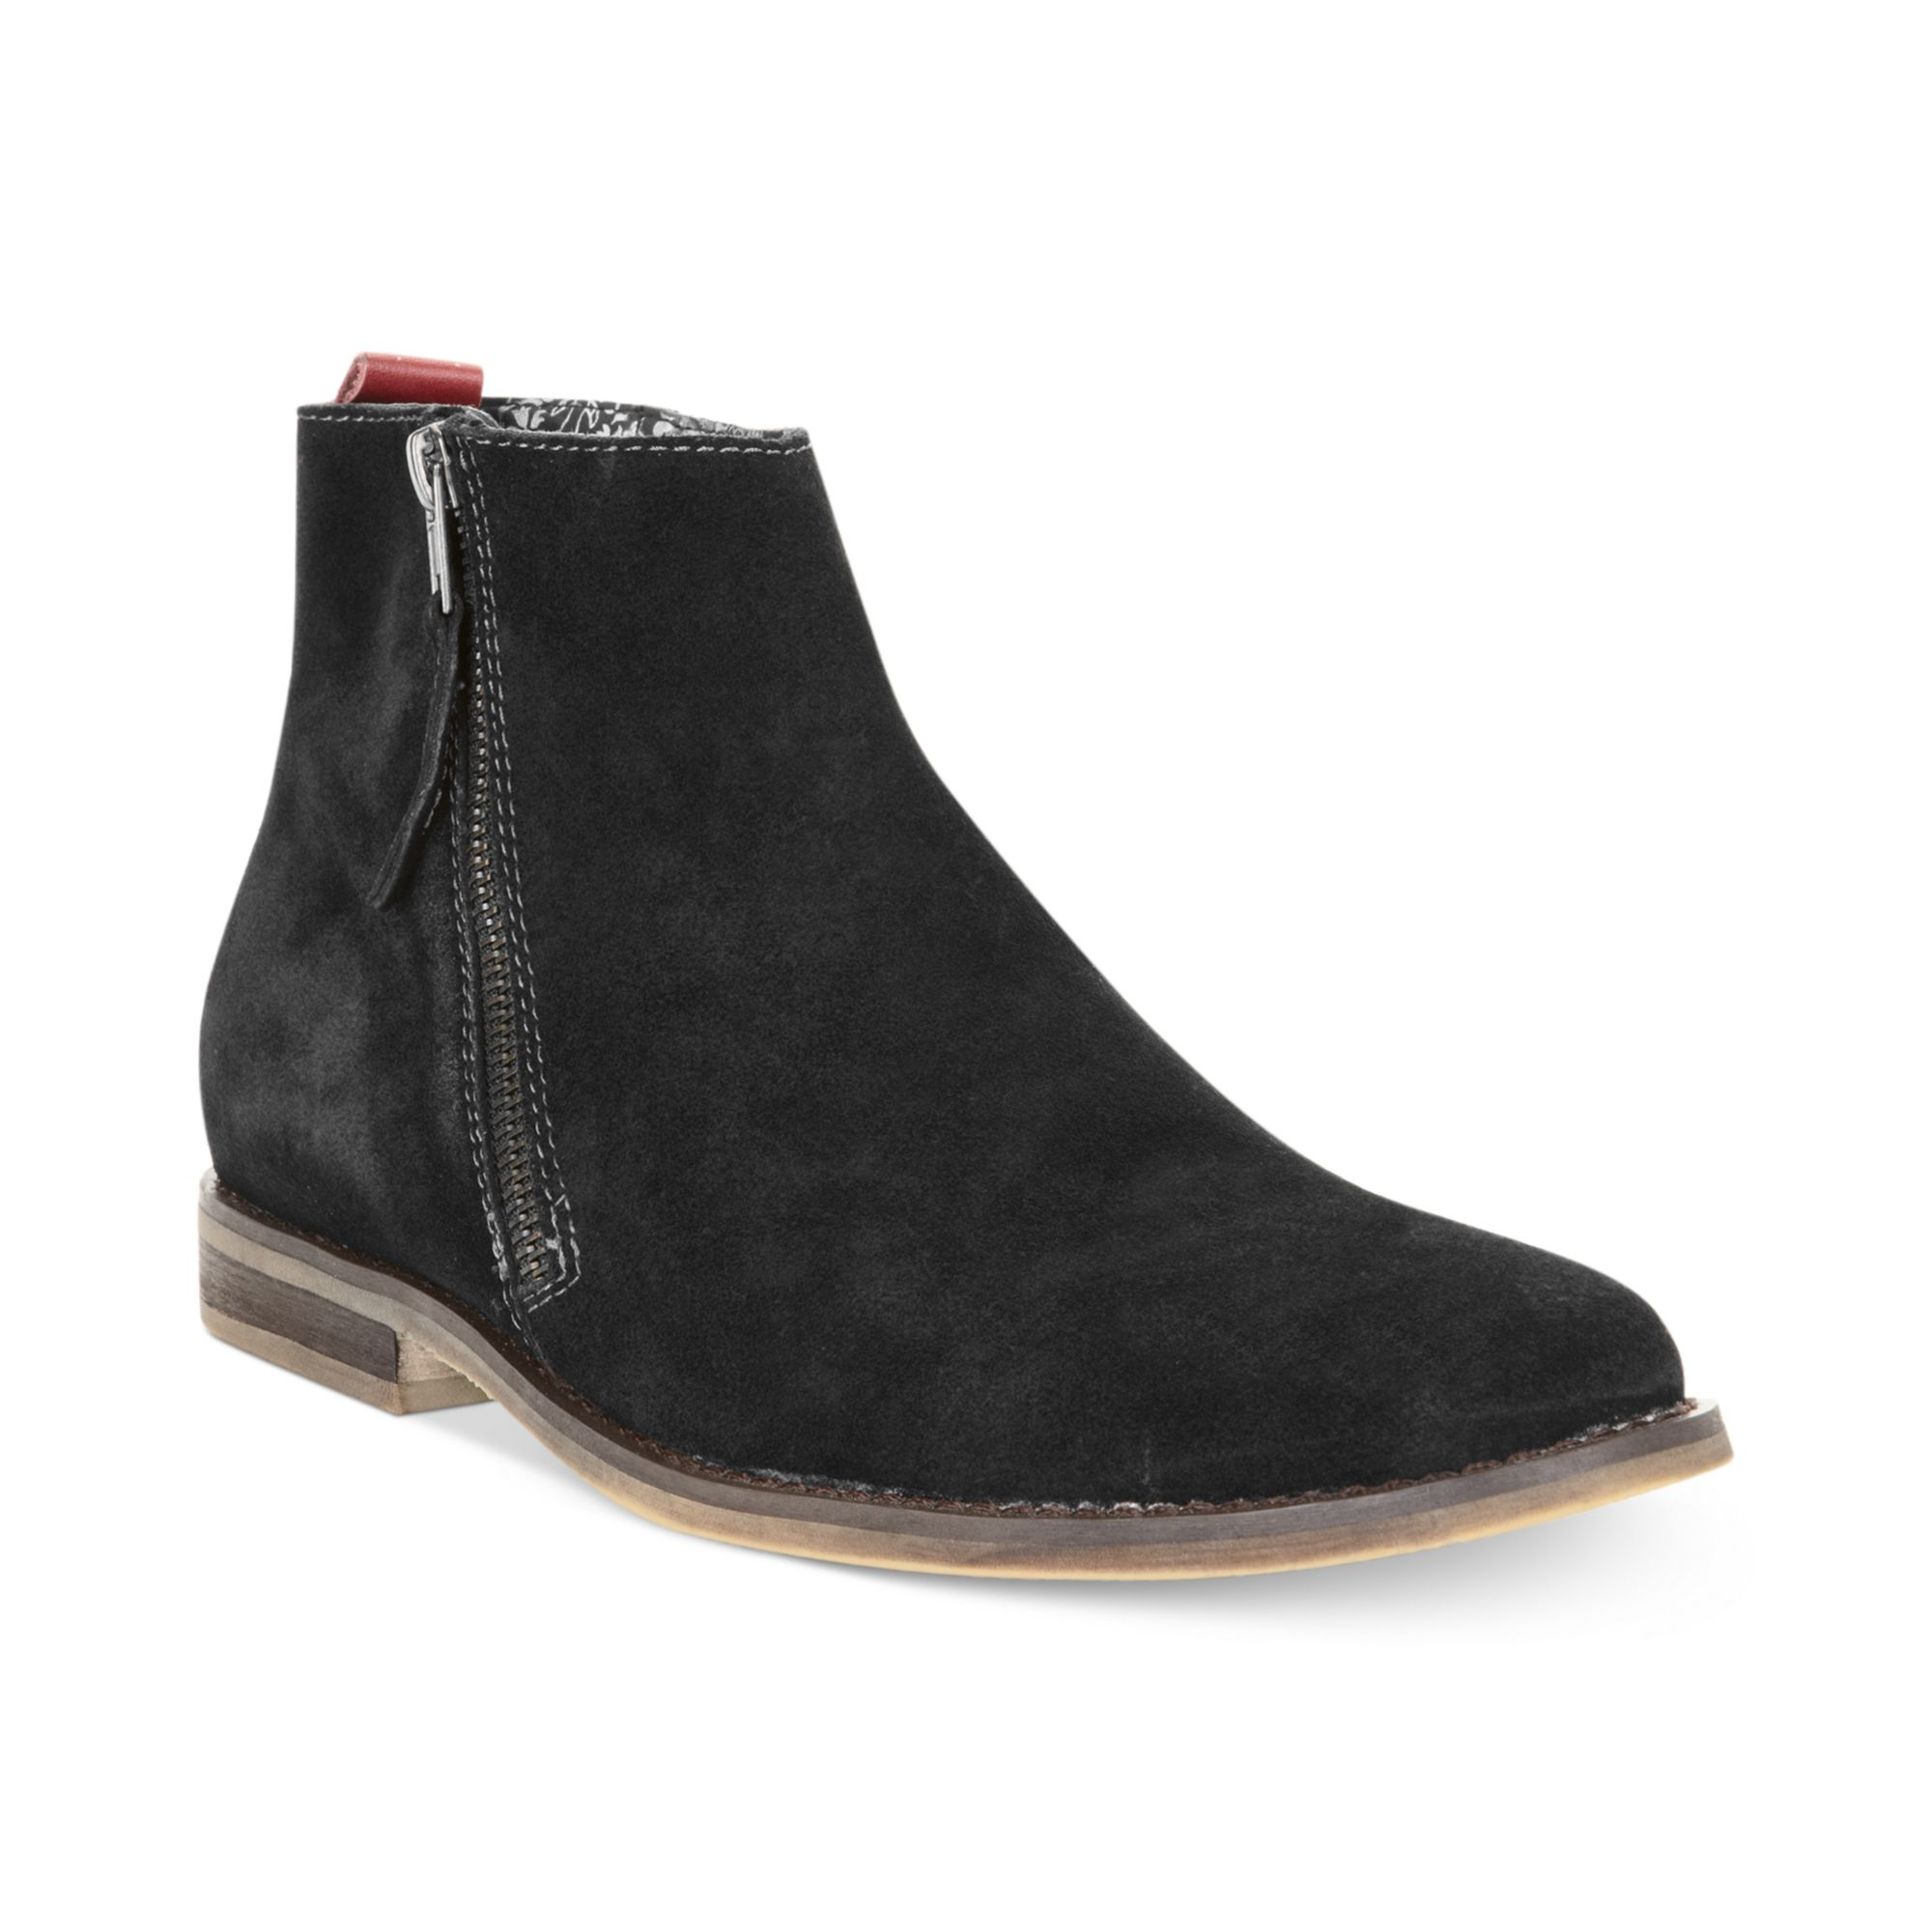 Lyst - Guess Mens Shoes Hanley Zip Boots in Black for Men